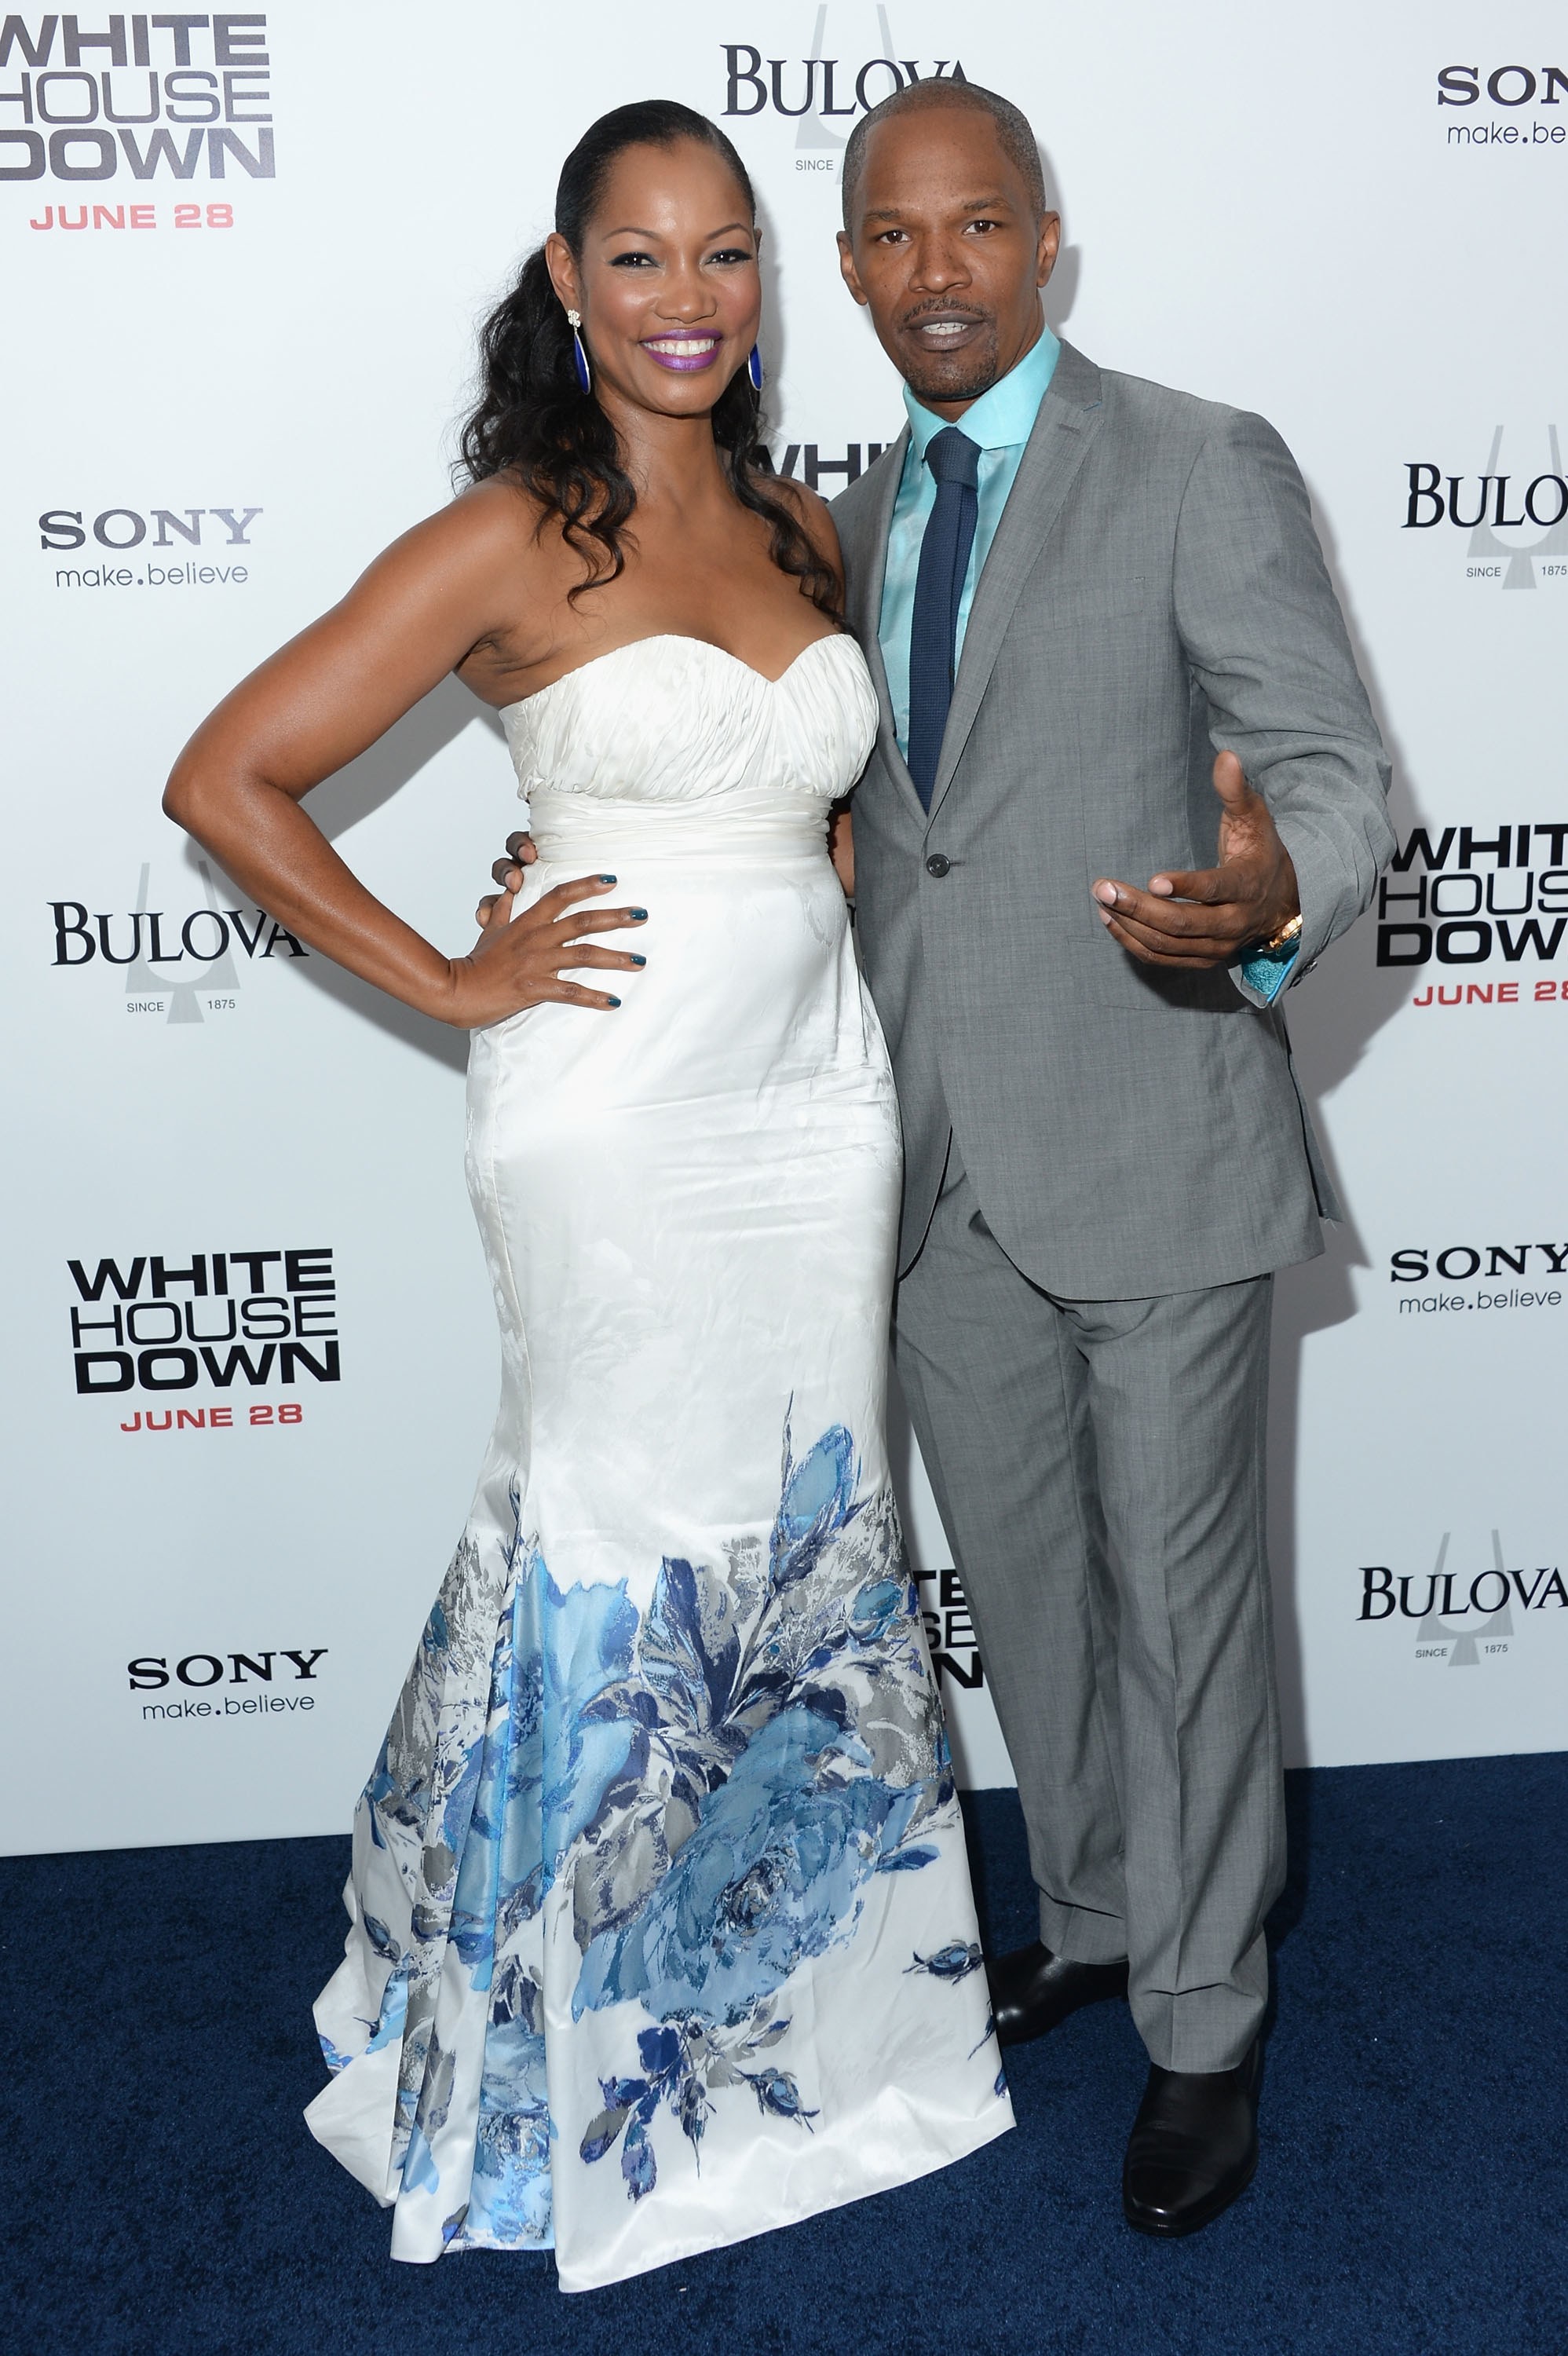 Jamie and Garcelle posing together at a movie premiere